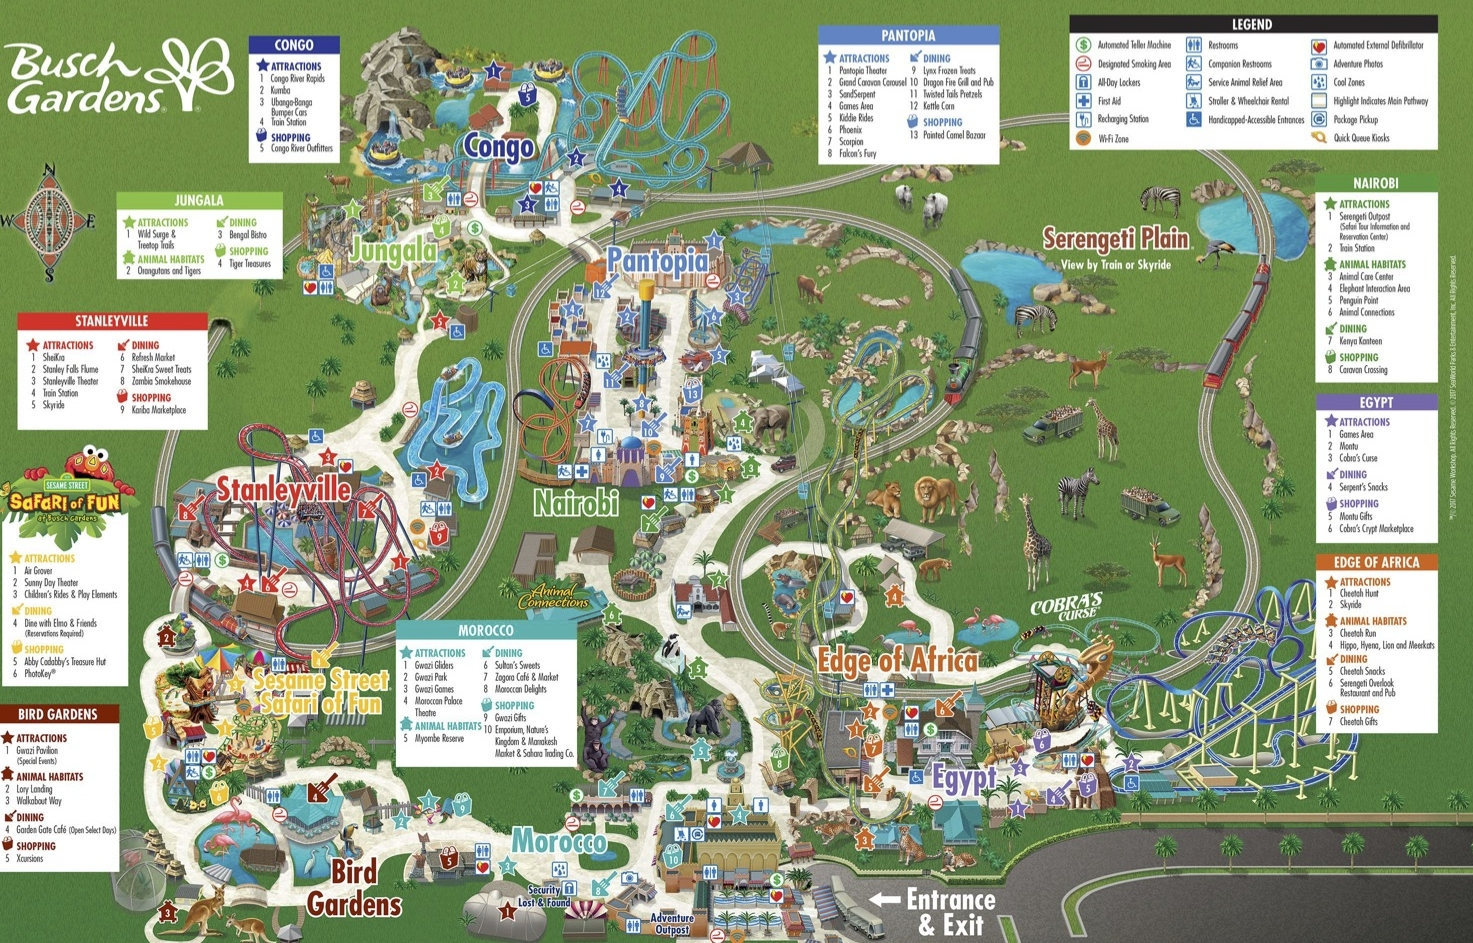 BUSCH GARDENS PARK MAP. ALL CREDITS BUSCH GARDENS.   DOWNLOAD LARGE MAP HERE.